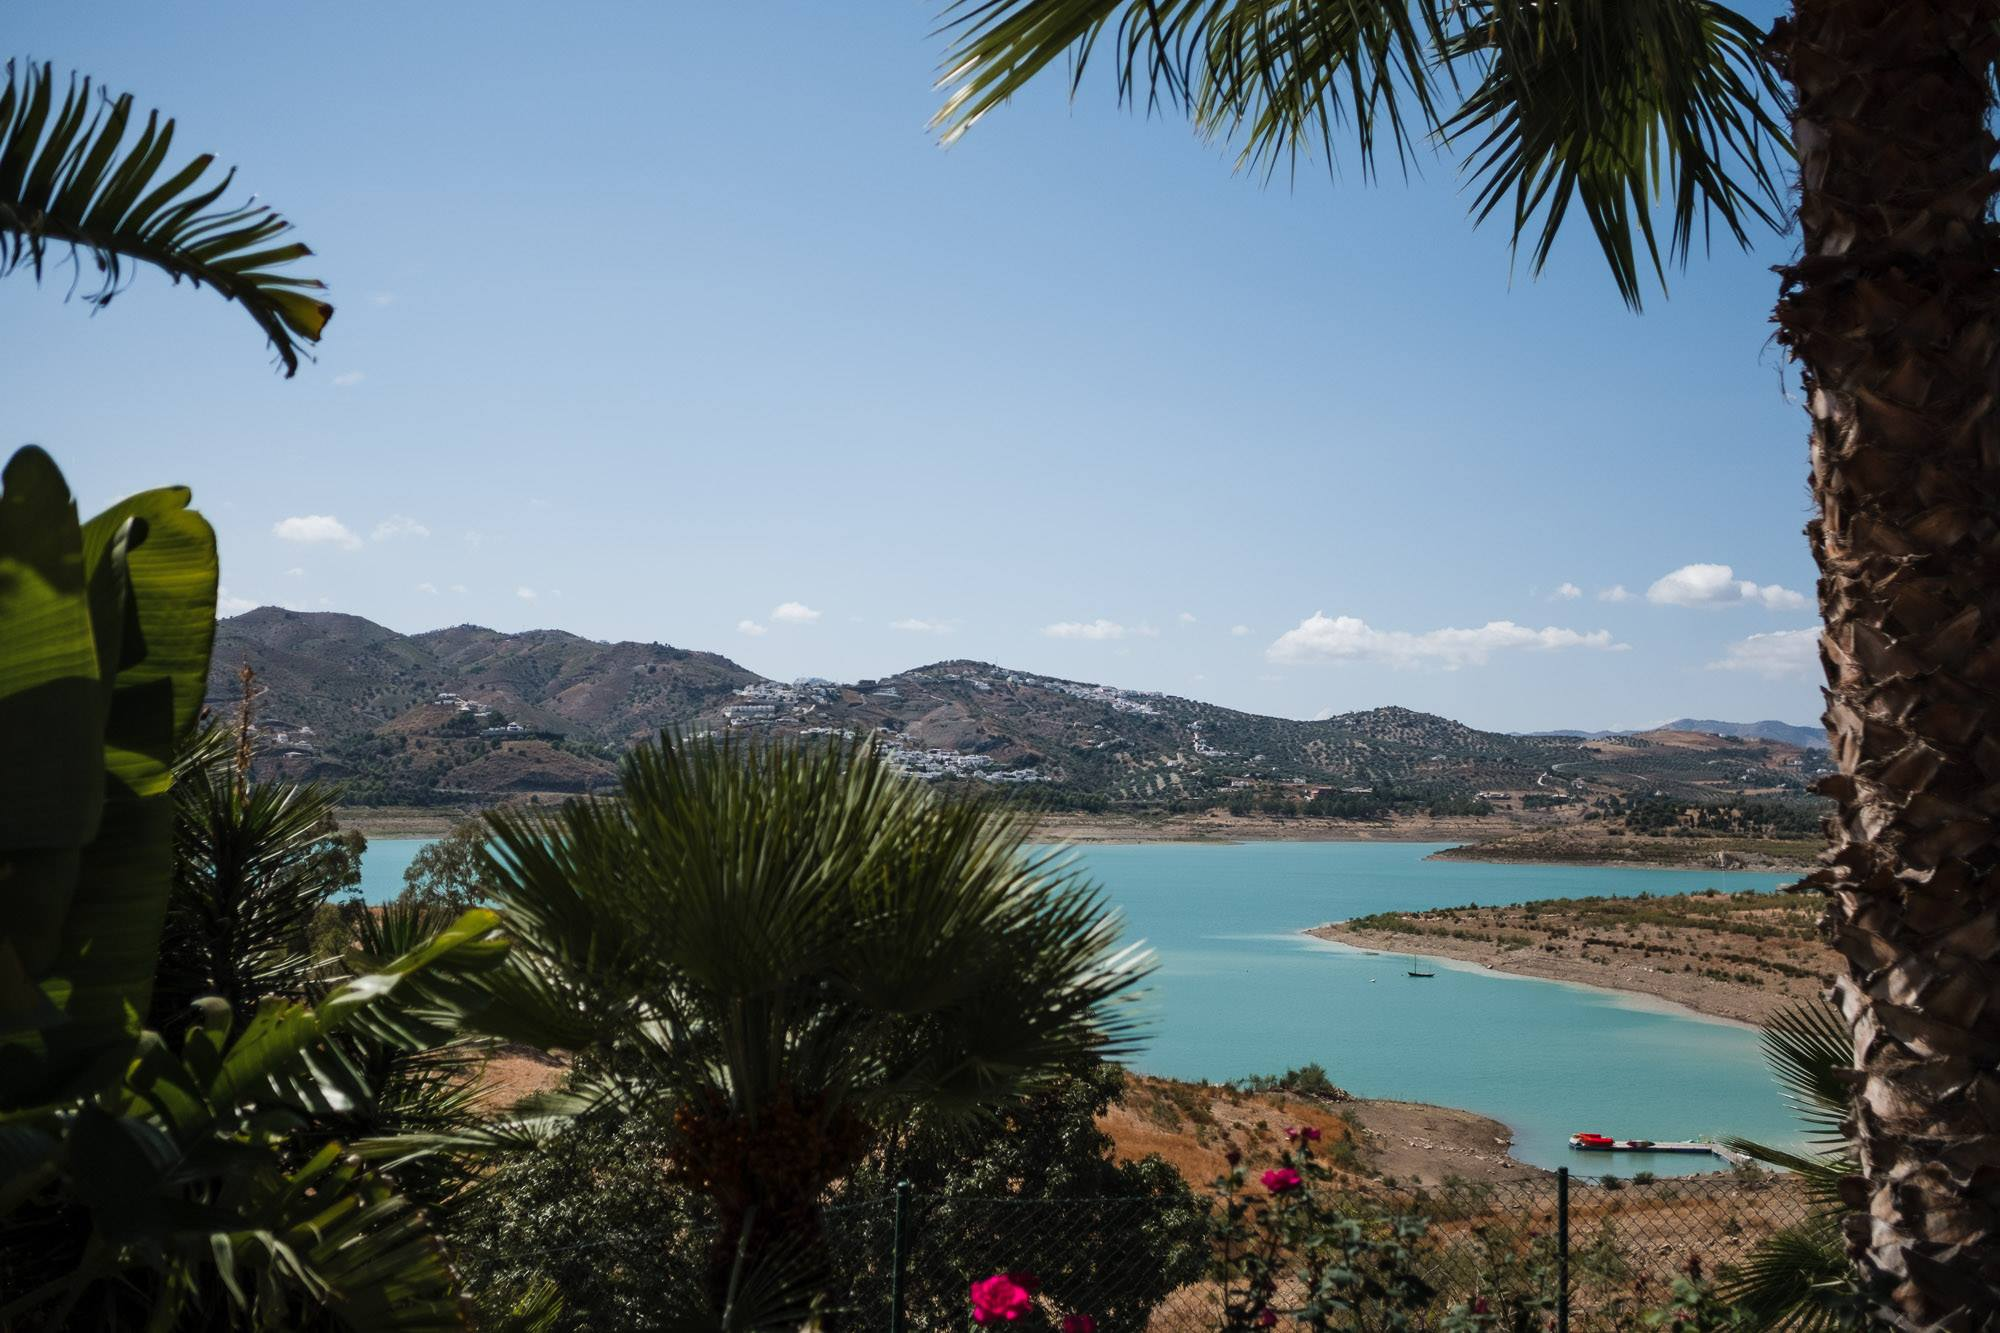 view of the vinuela reservoir